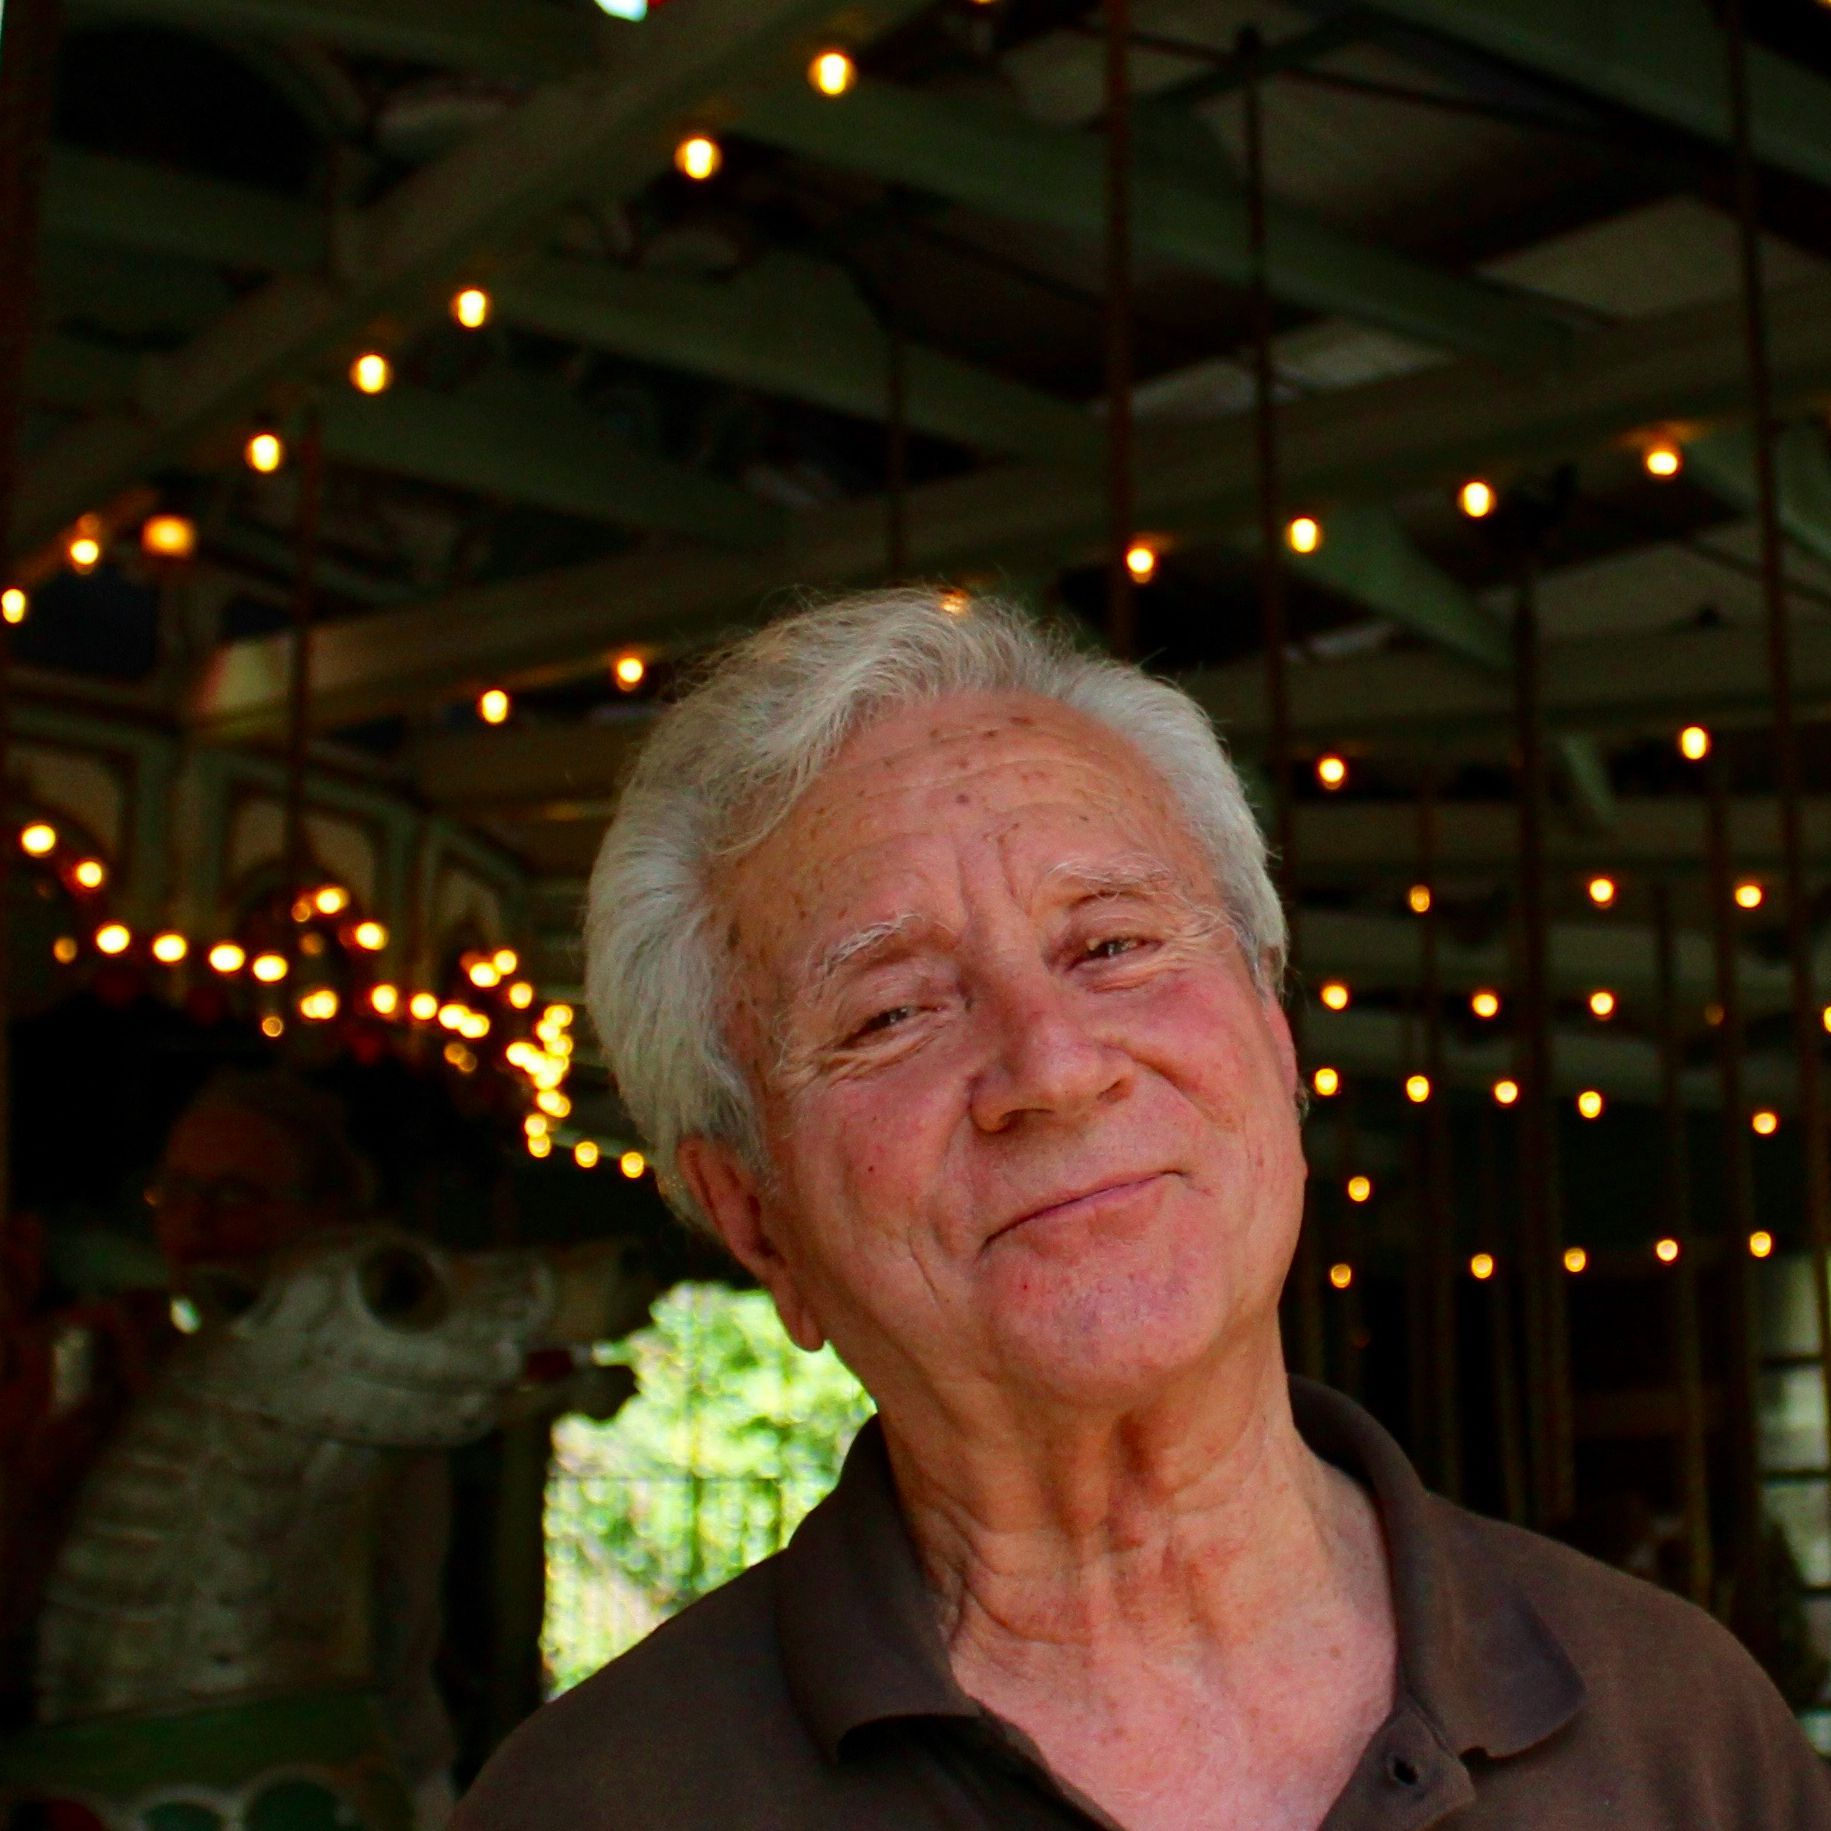 PODCAST: Prospect Park's Carousel Master Retiring After 26 Years on Job